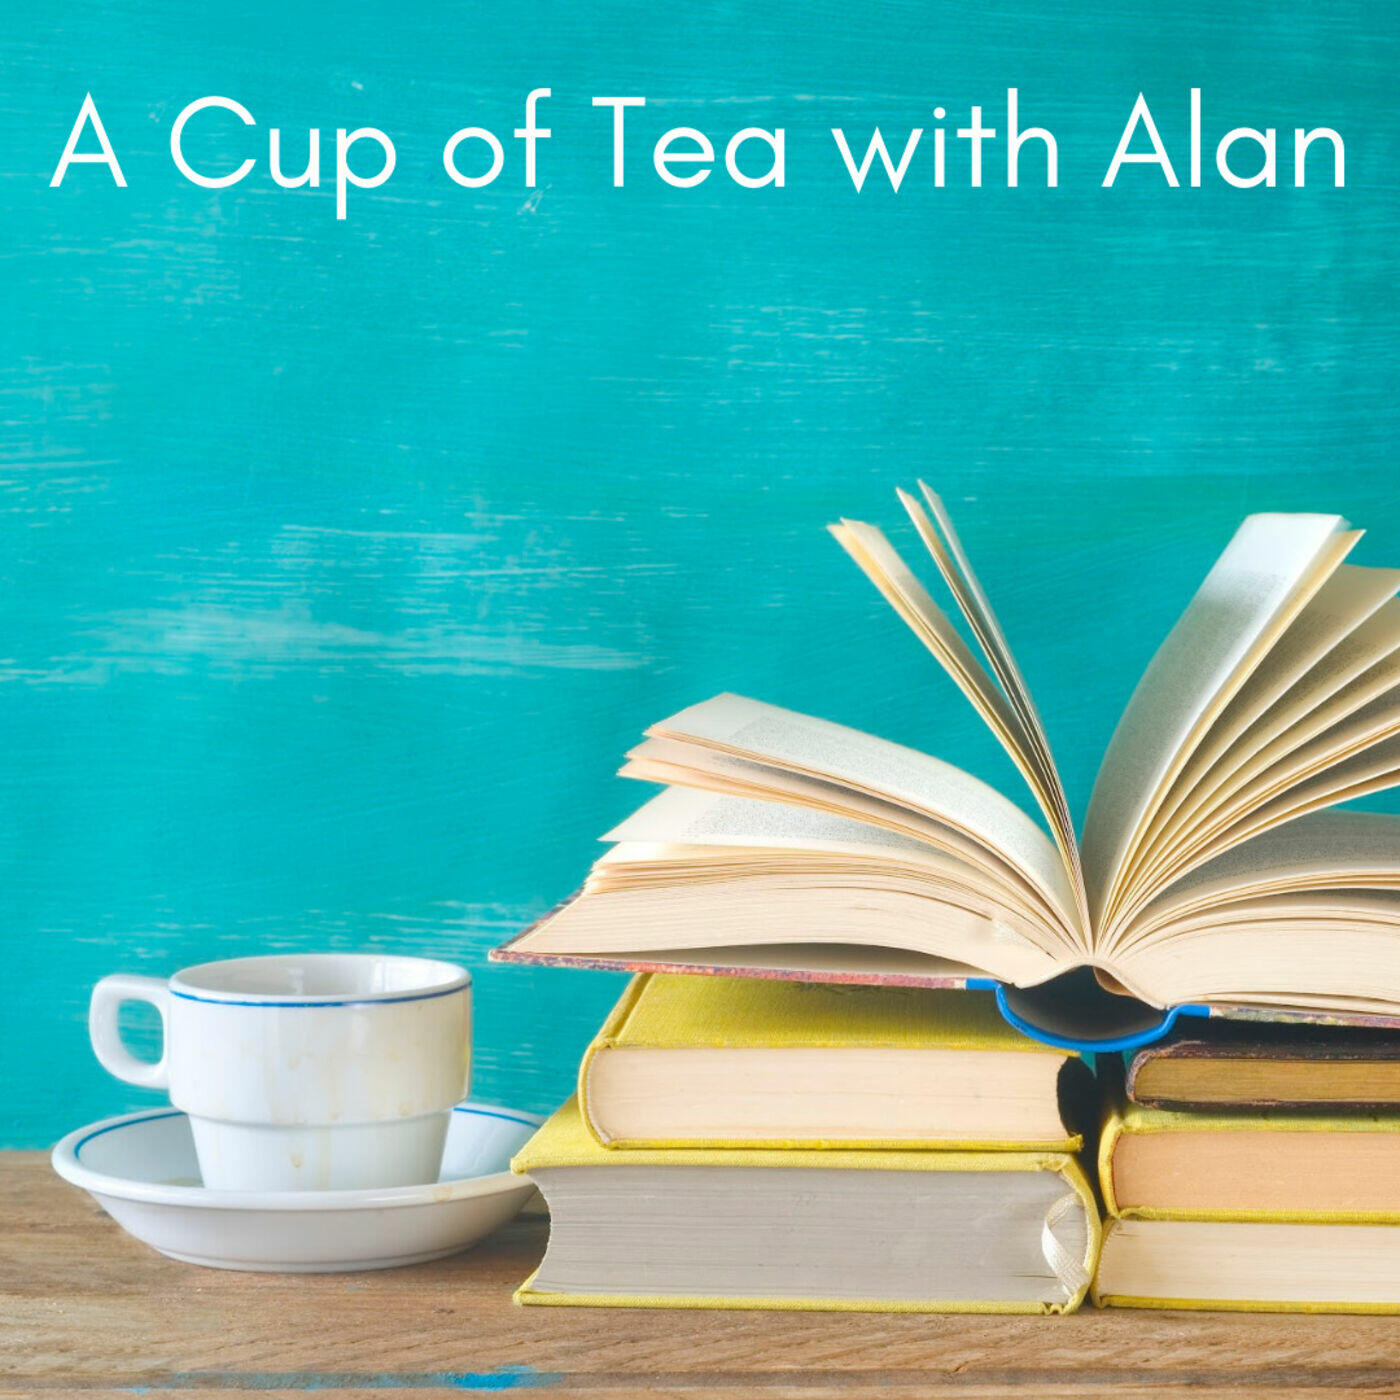 A Cup of Tea with Alan